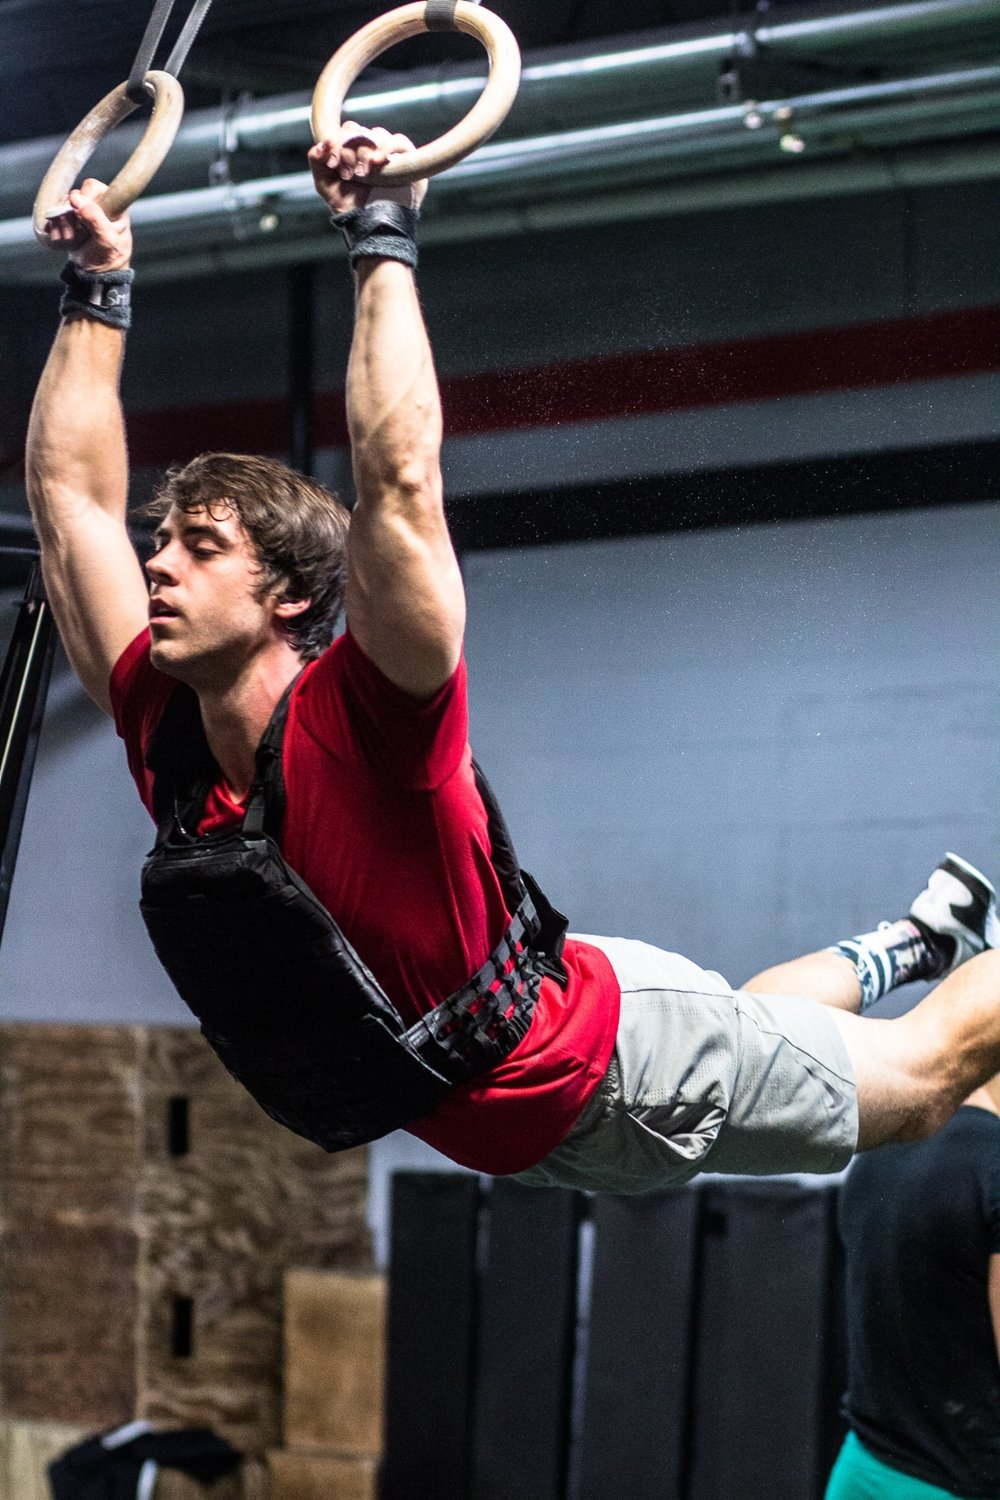 weight-ring-muscle-ups-gymnastics-alec-smith-strong-crossfit-athlete-everyday-lifters-viviana-podhaiski